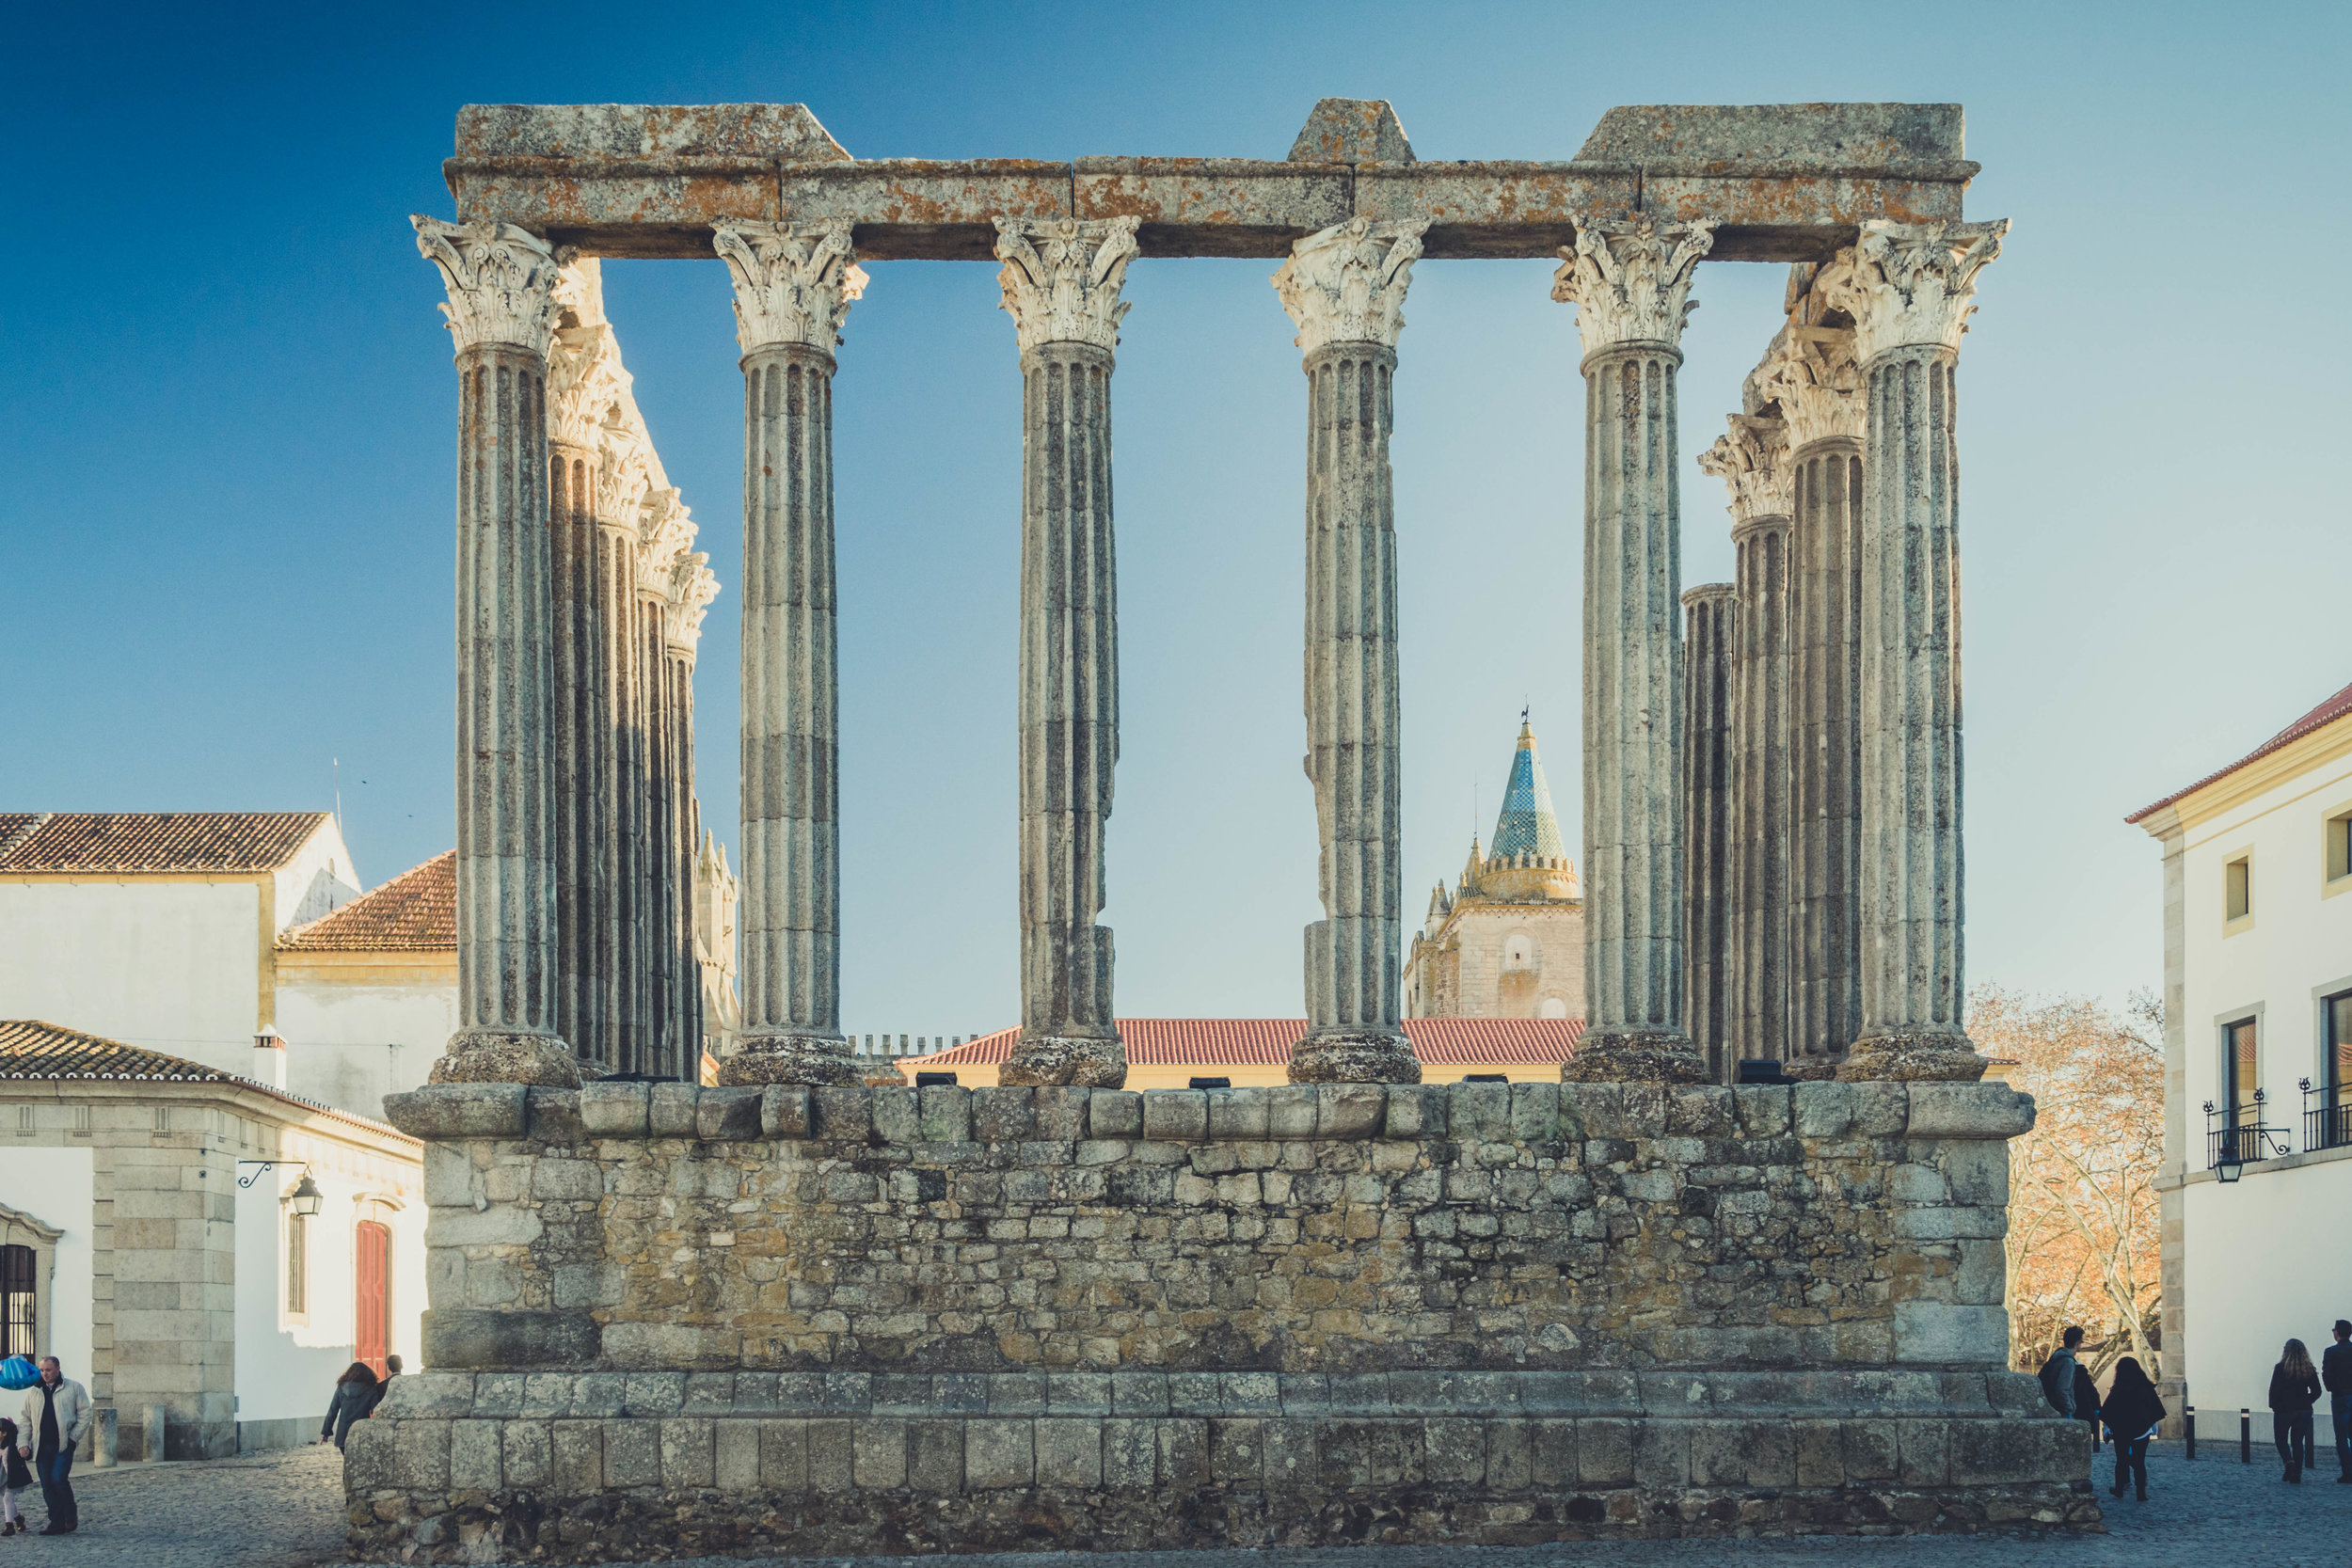 Evora. Roman Ruins. Portugal. Alentejo. Piliers. Roman city. ancient roman town. Blue sky. travel. adventure. history. historical. wine. fun times.jpg